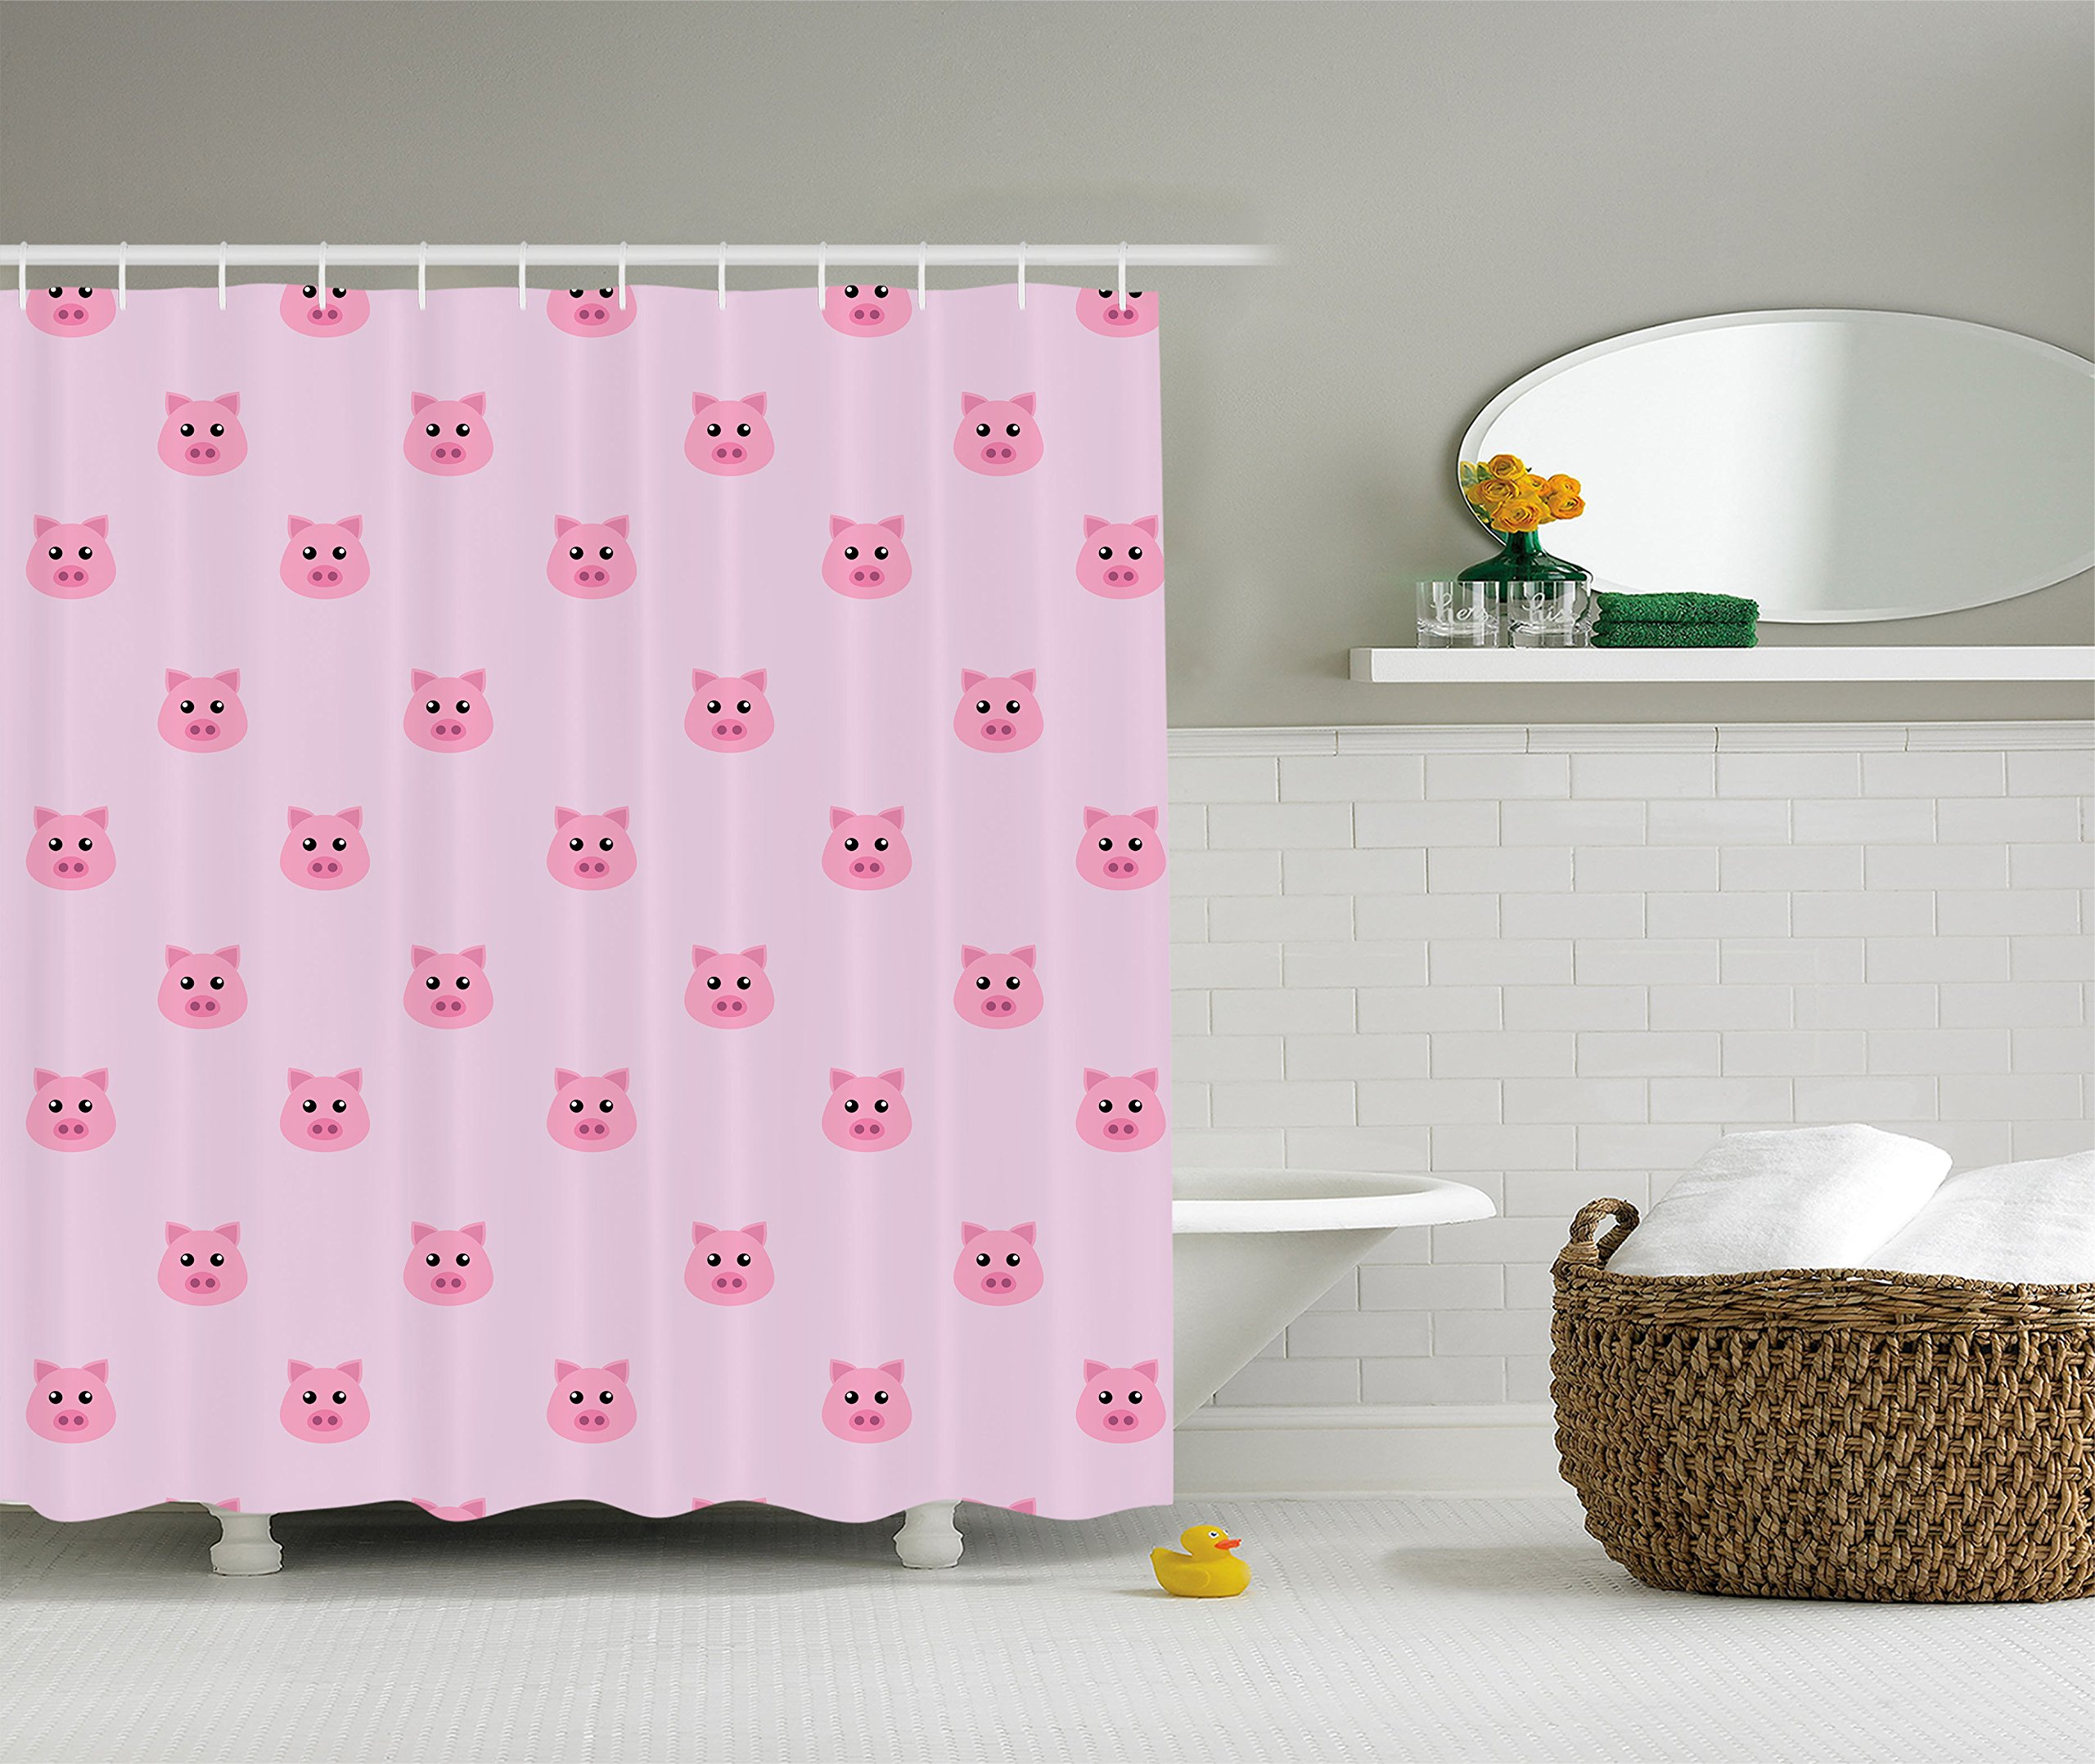 Ambesonne Pig Decor Collection, Pig Avatar Kid-Friendly Clip Art Funny Icon Illustration Design Art Print, Polyester Fabric Bathroom Shower Curtain Set with Hooks, Pink Blush